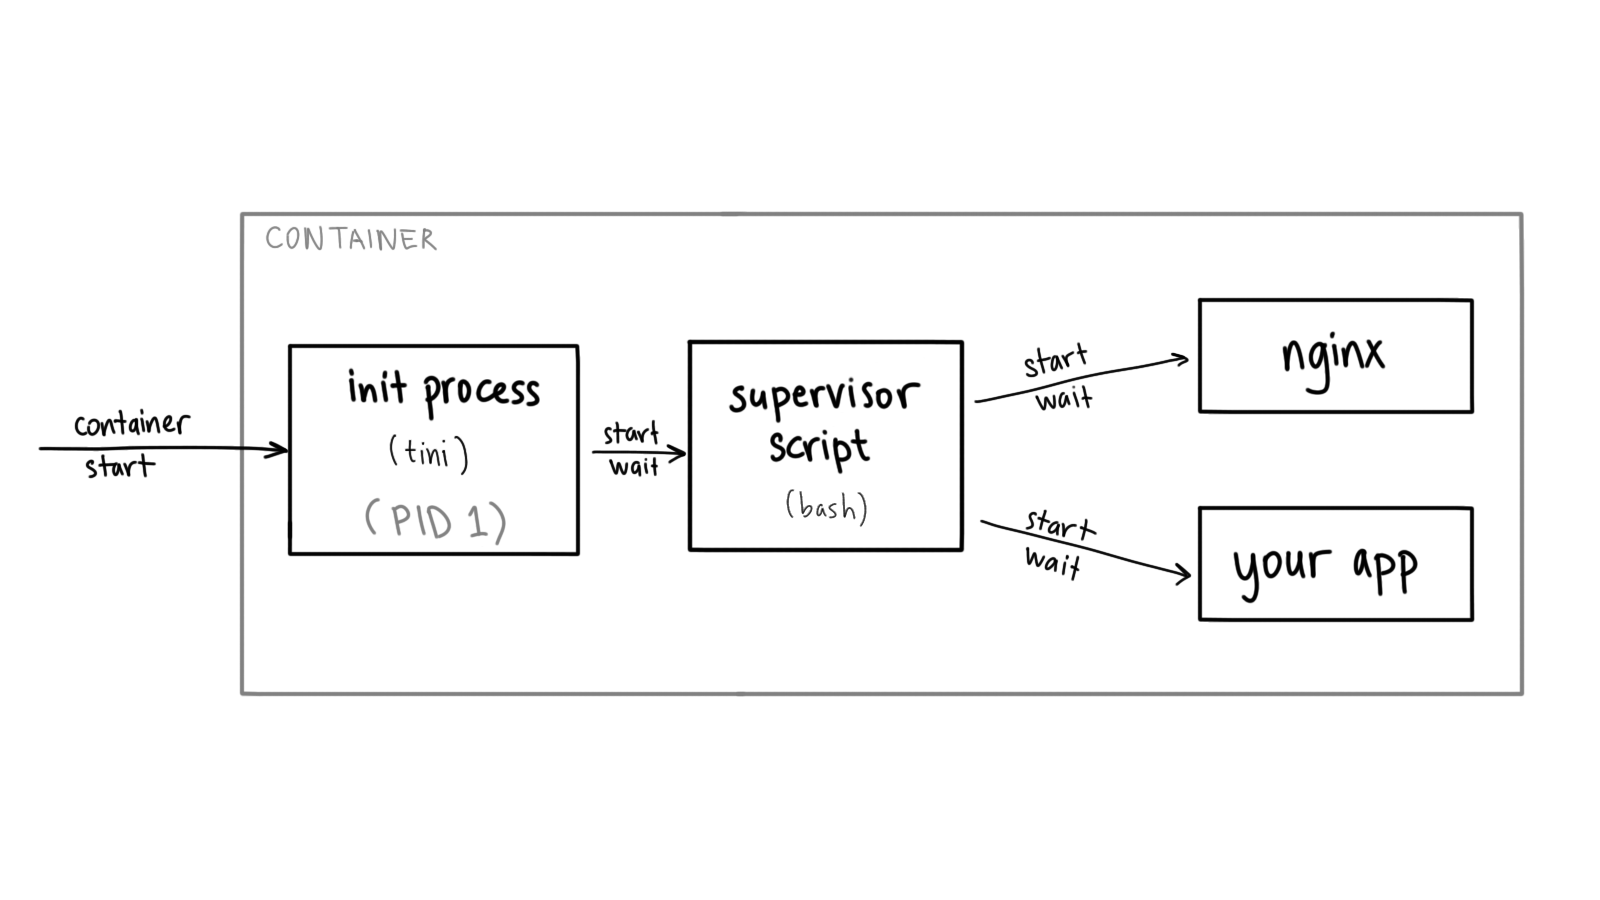 diagram showing container with tini as the entrypoint supervising a script that starts nginx and user application